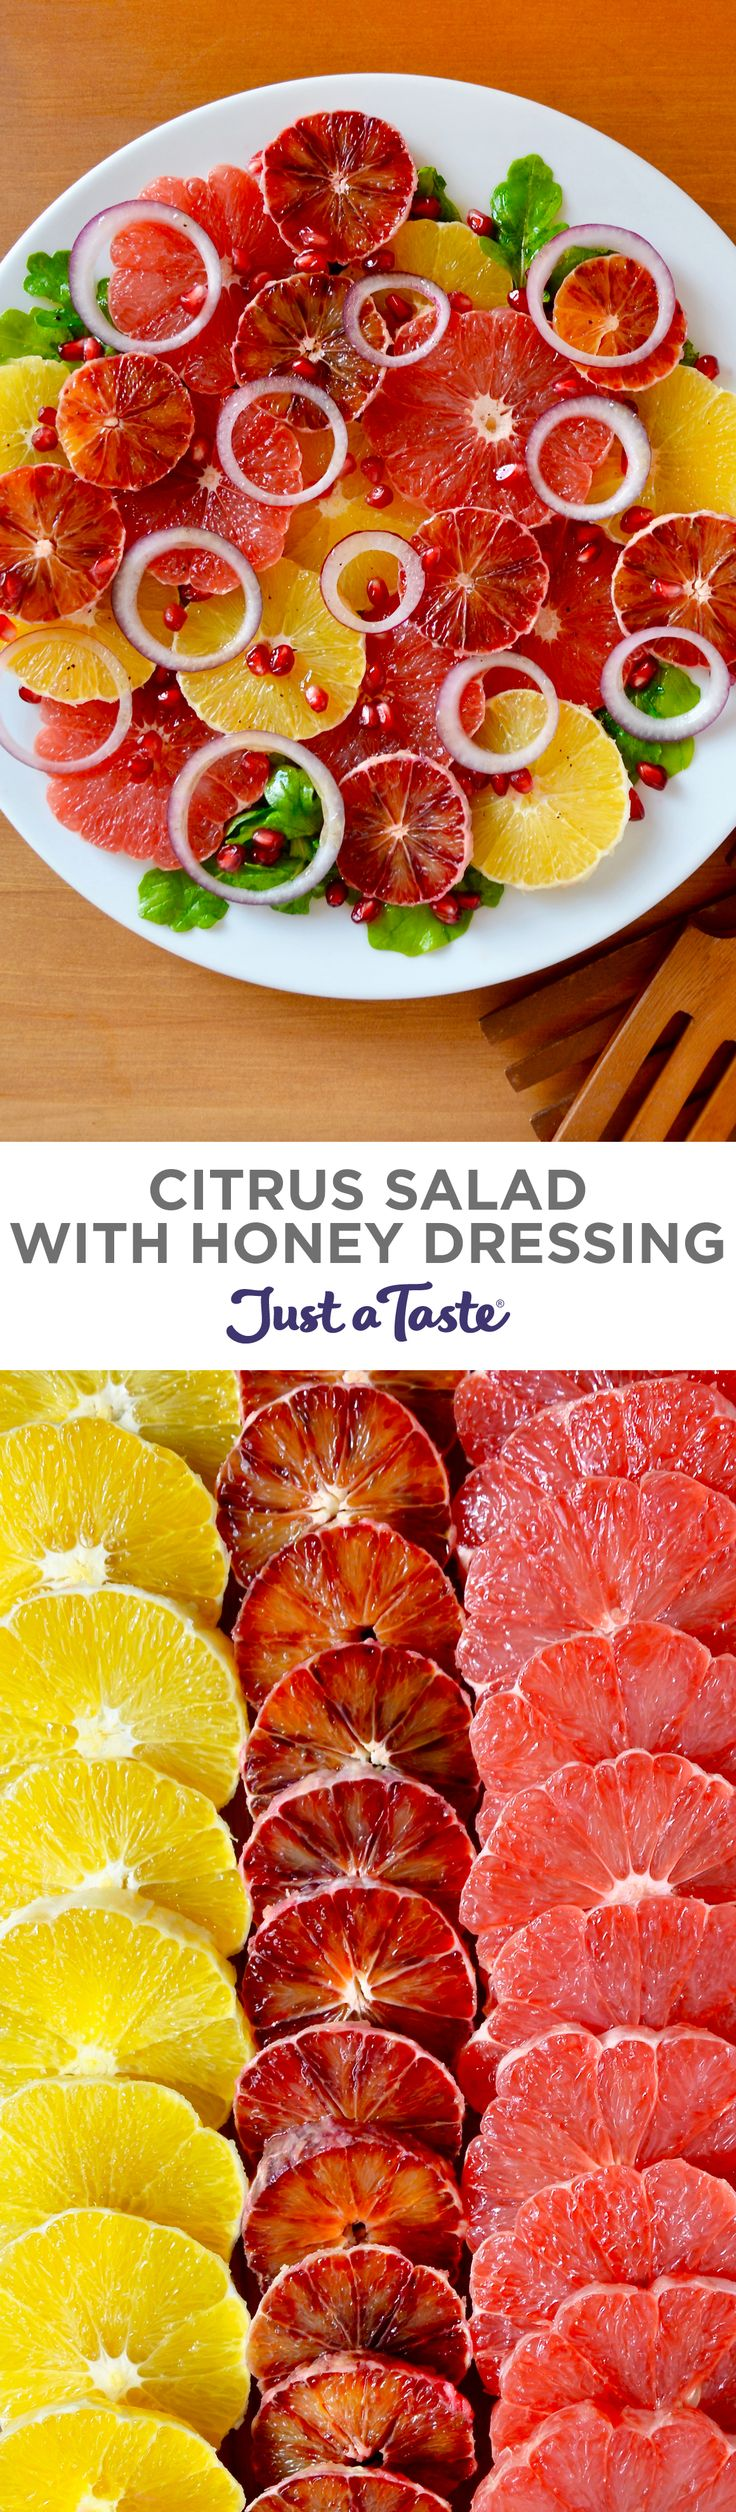 Citrus Salad with Honey Dressing recipe from justataste.com #recipes #healthyeating #Healthy